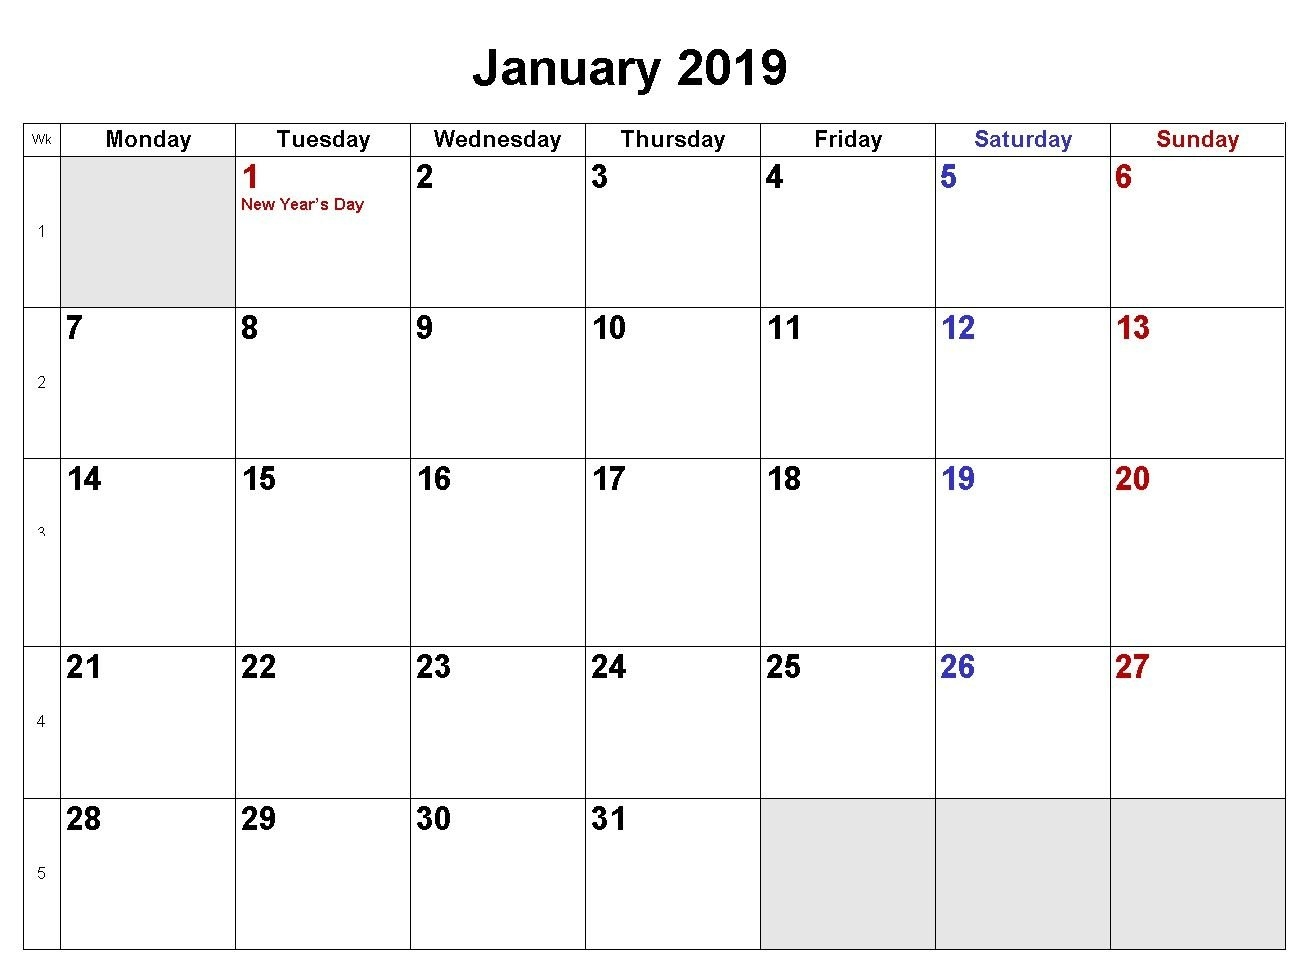 January 2019 Calendar Download In Word Excel Pdf Formats | Monthly Calendar 2019 Download Word